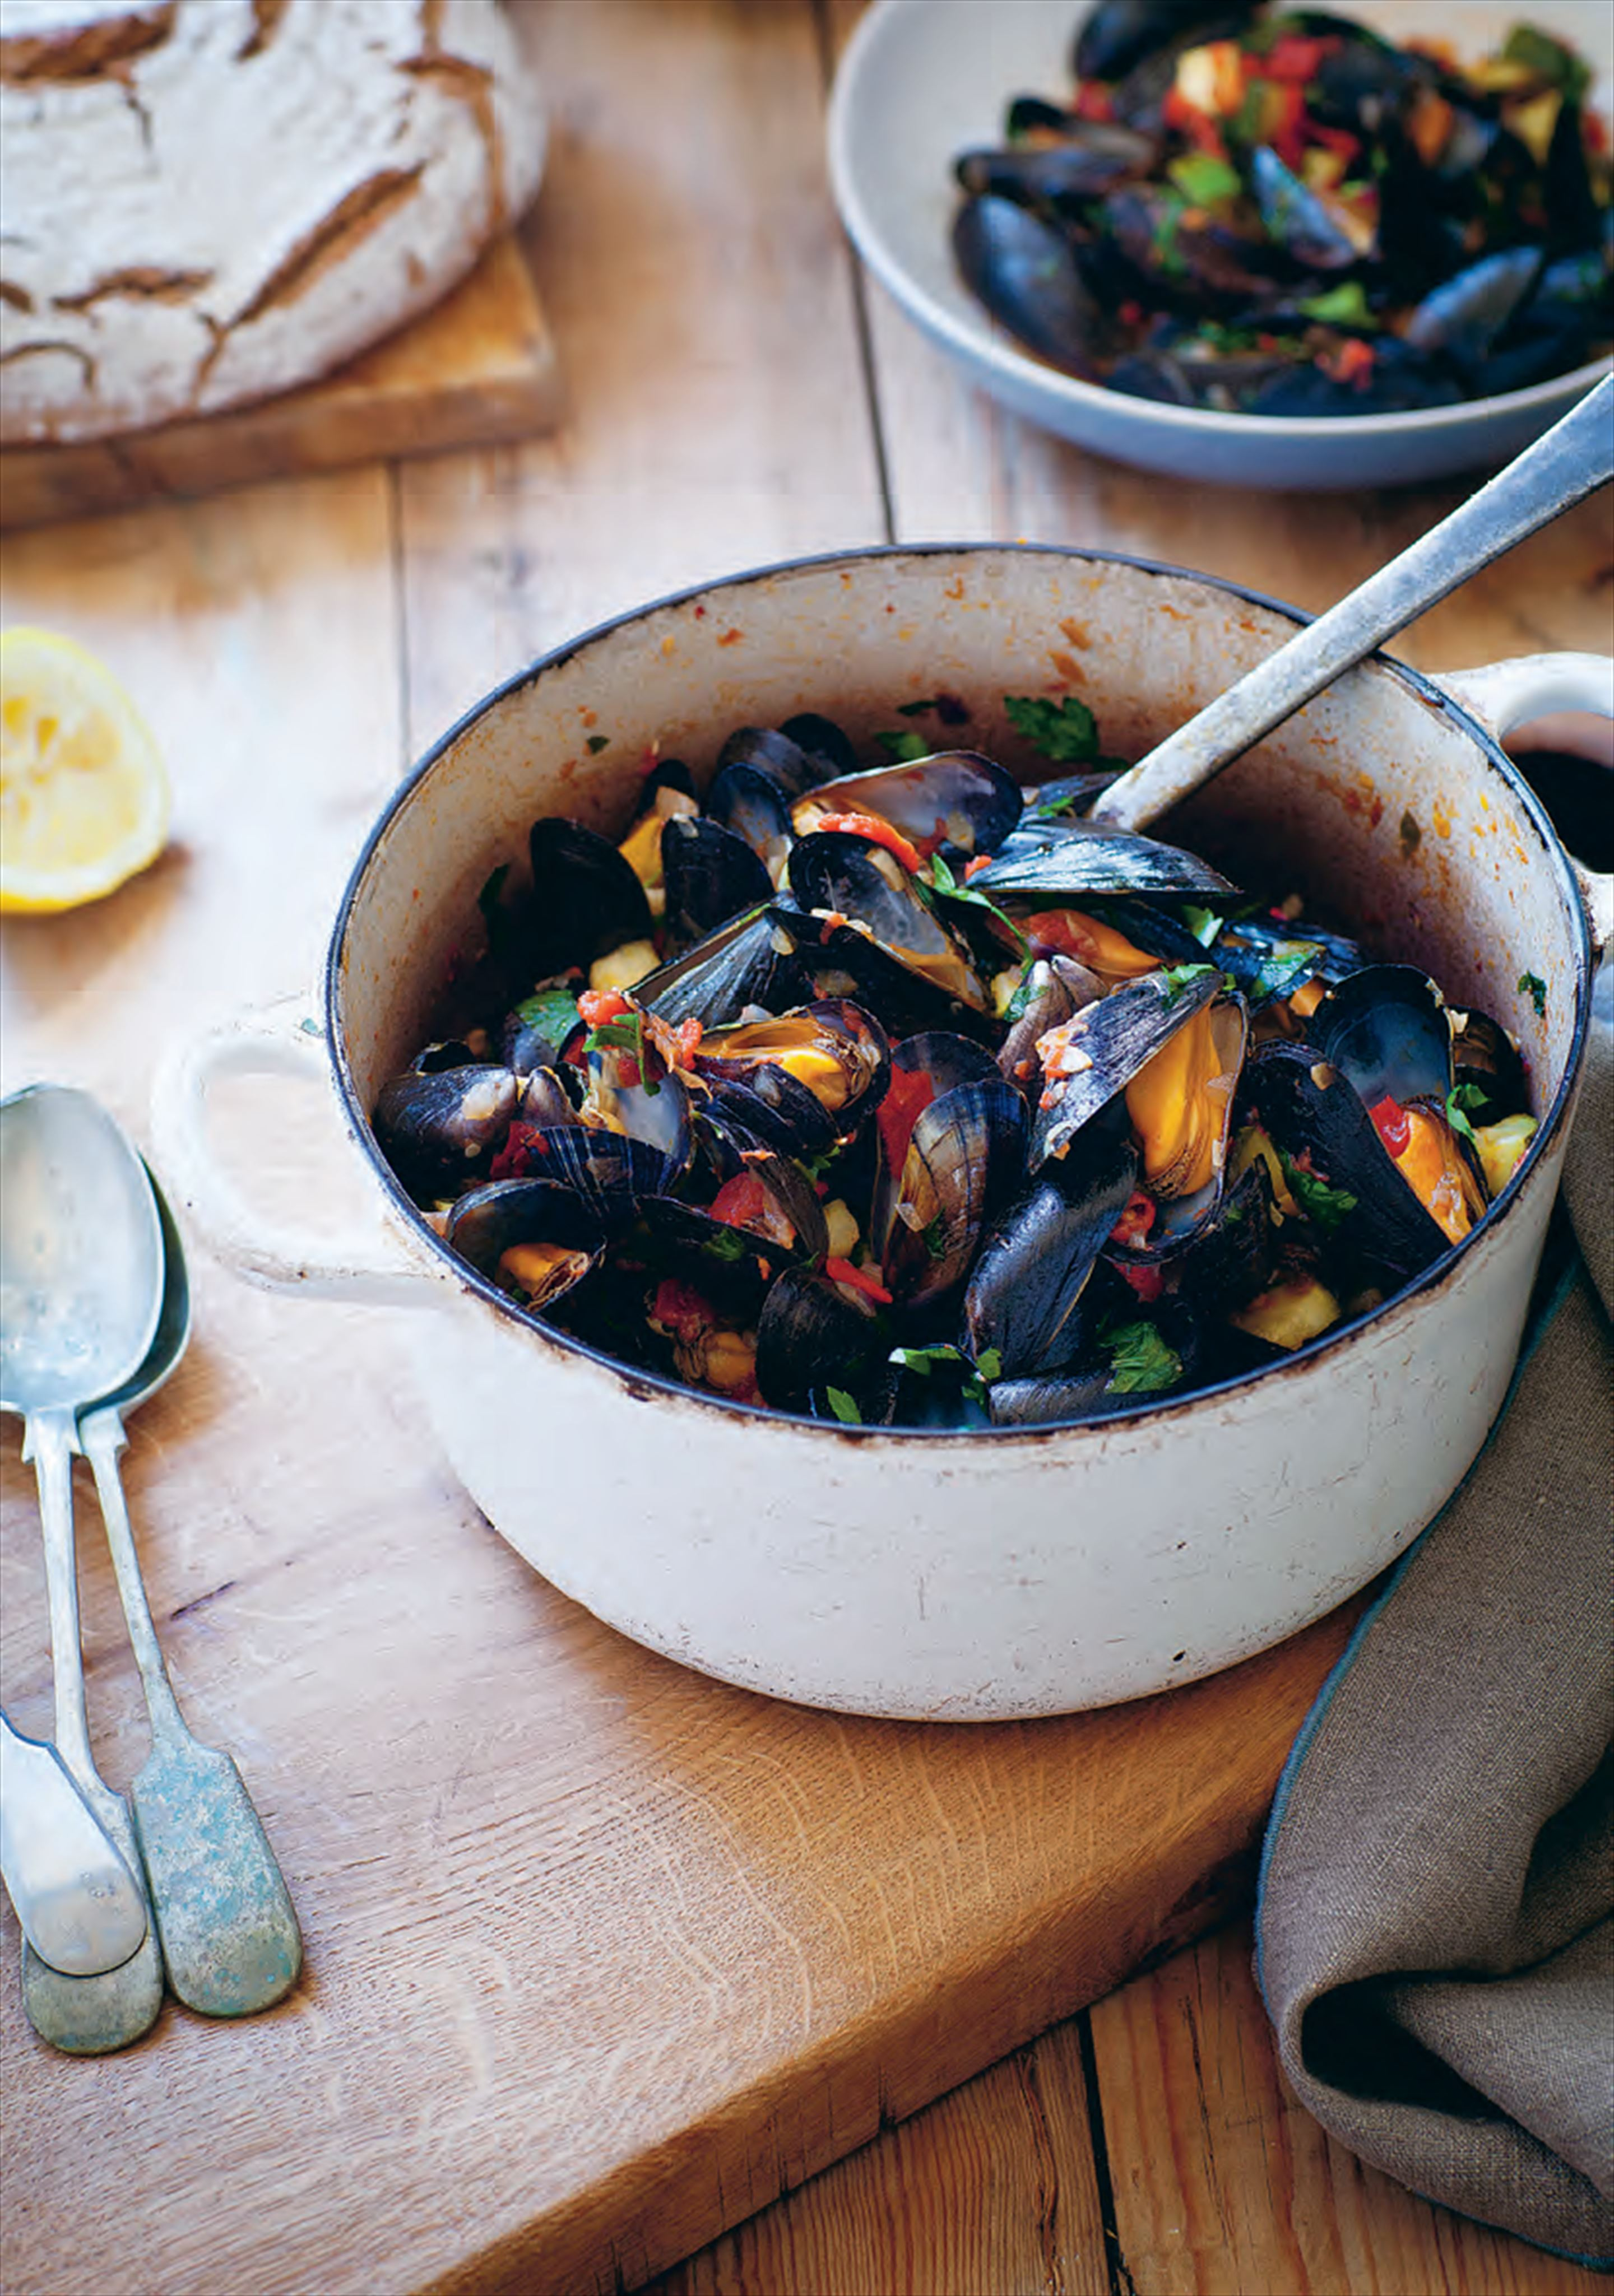 Mussels with piquillo peppers, capers and courgettes